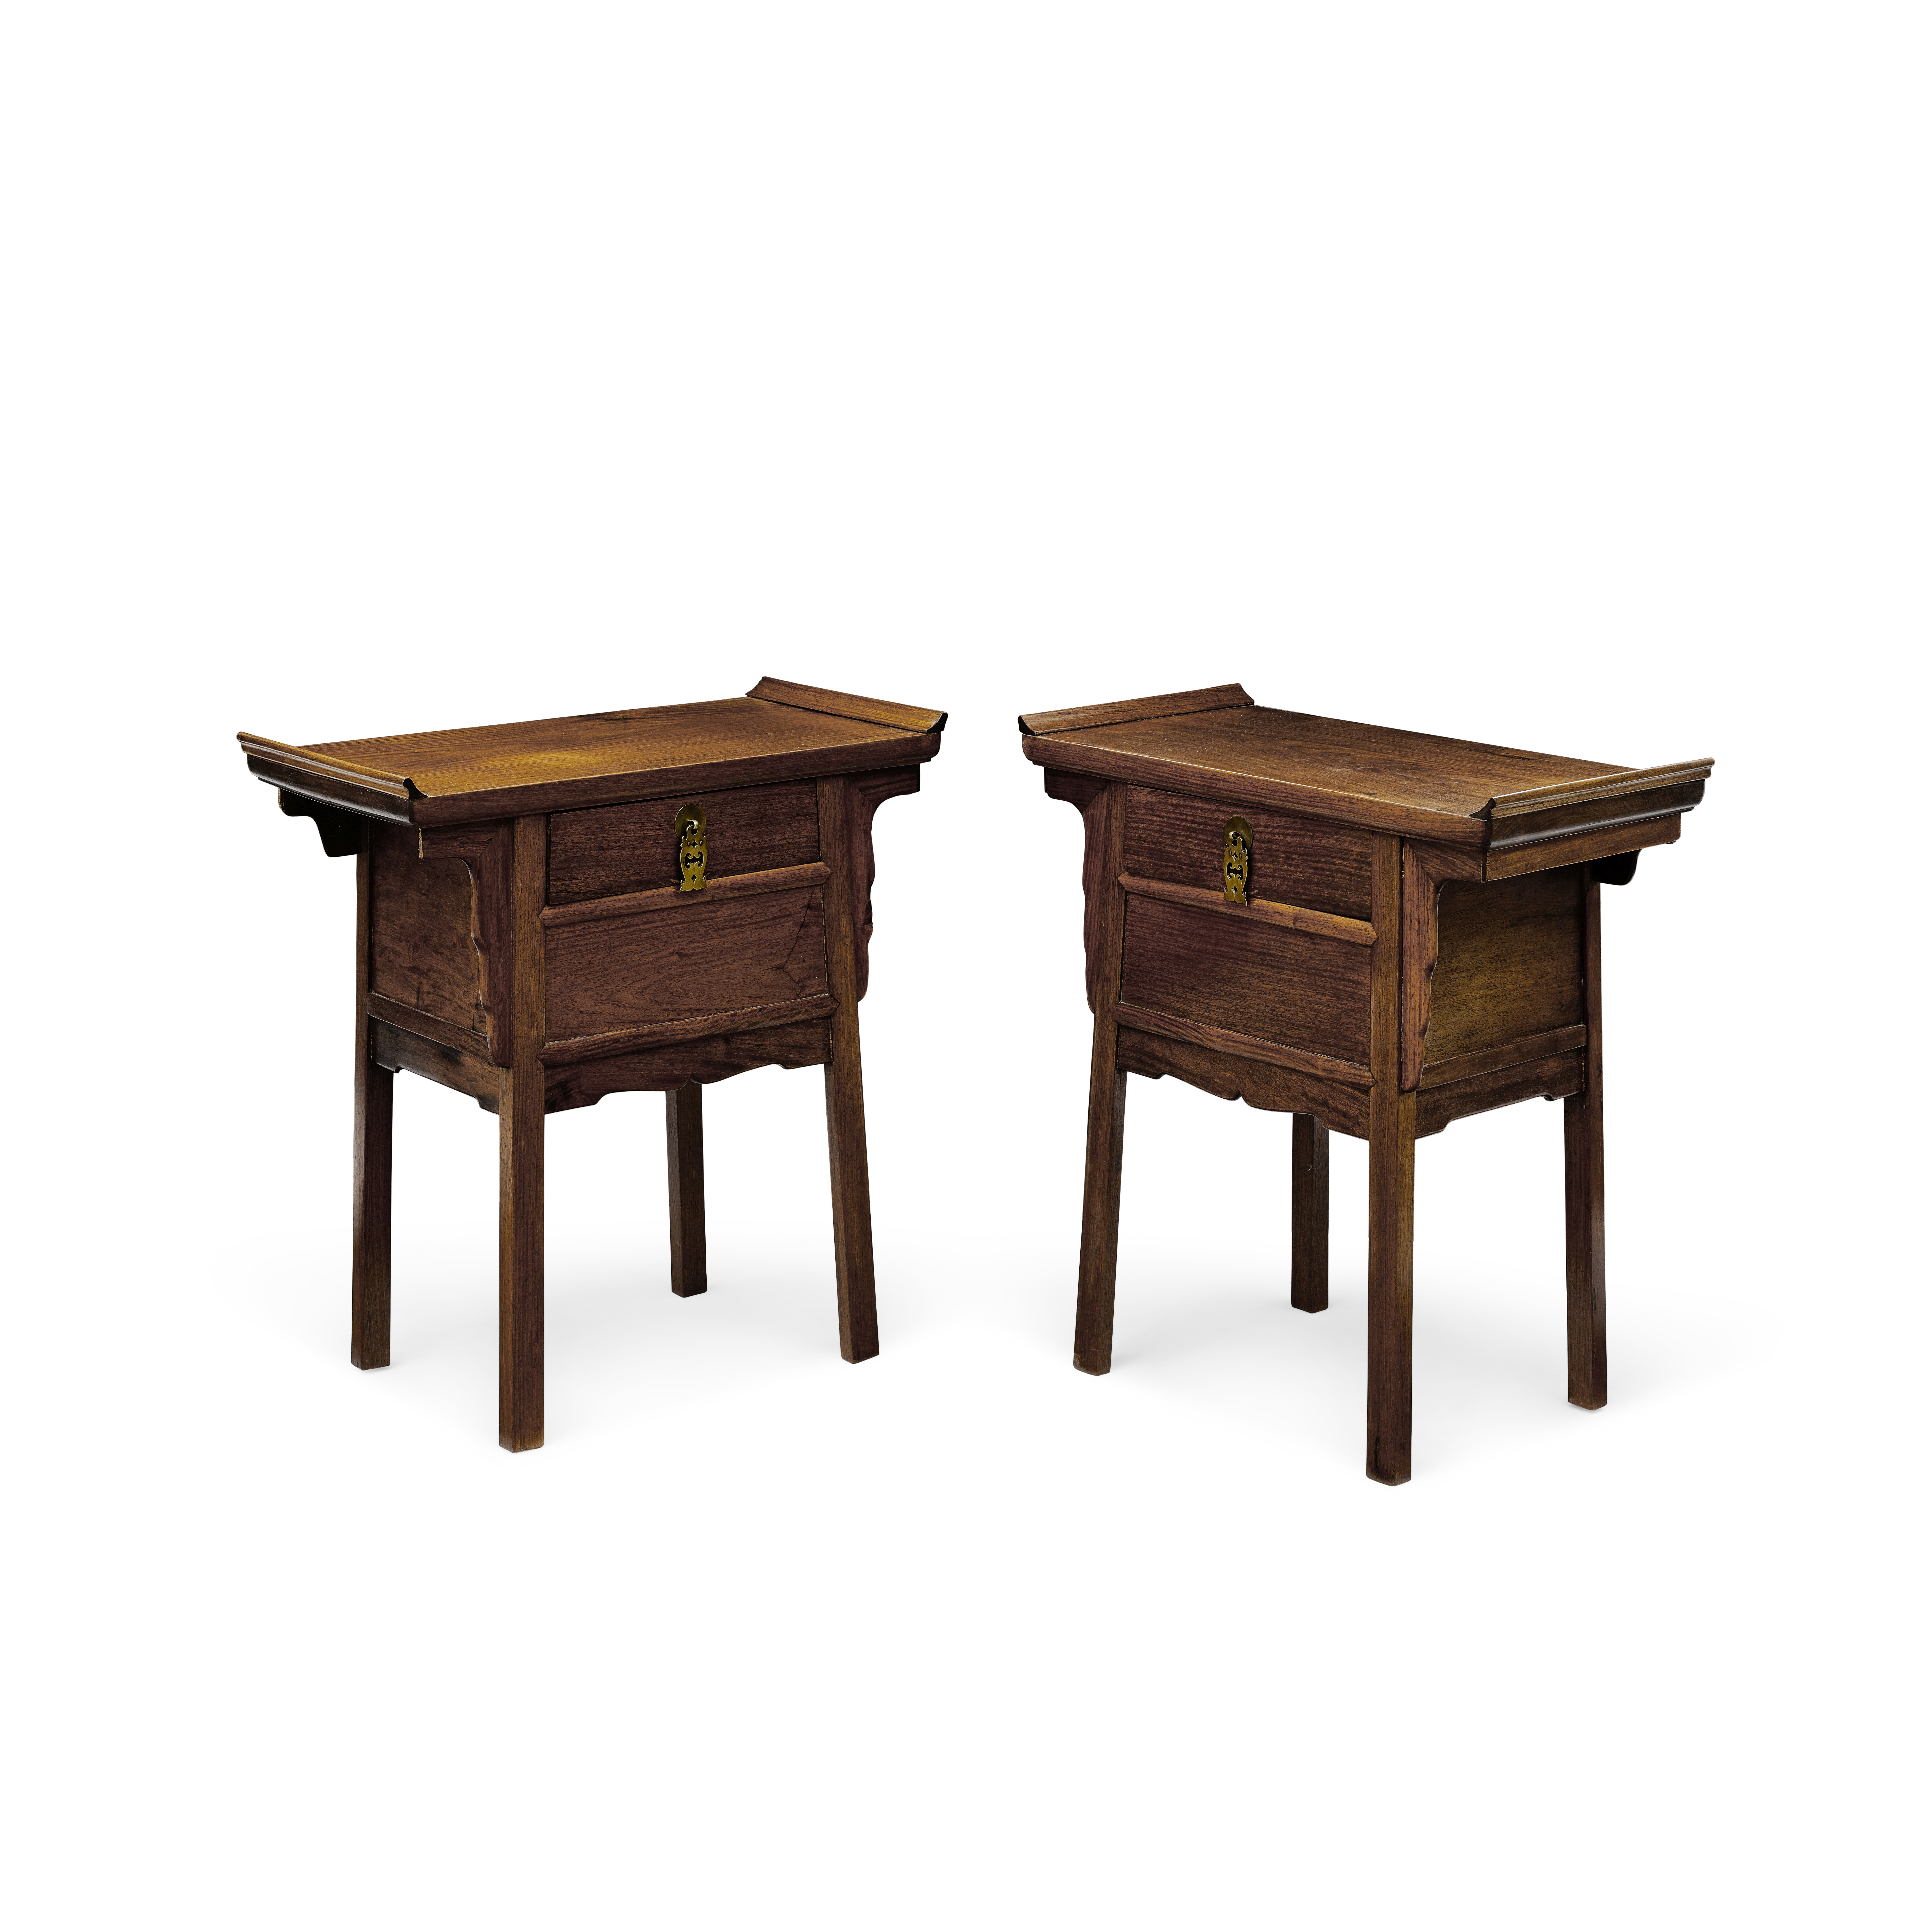 Lot 255 - Two small Chinese huanghuali and mixed hardwood side tables Republic Period